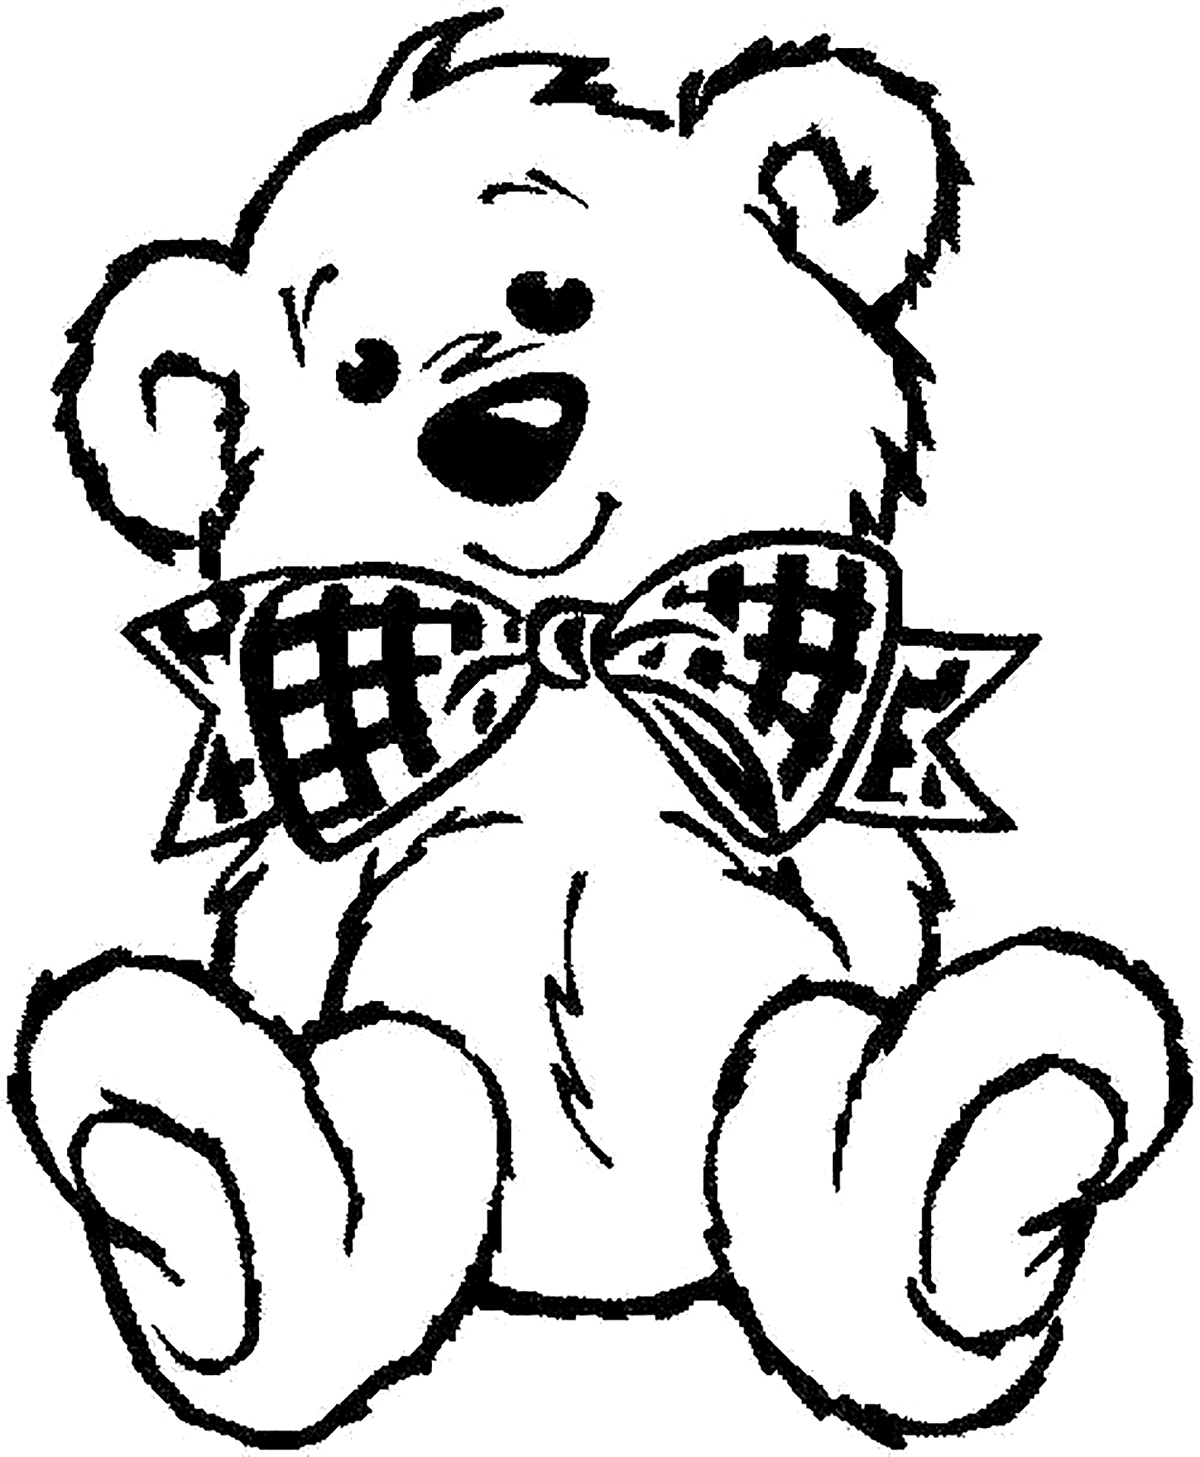 Top 18 Free Printable Teddy Bear Coloring Pages Online | 1457x1200